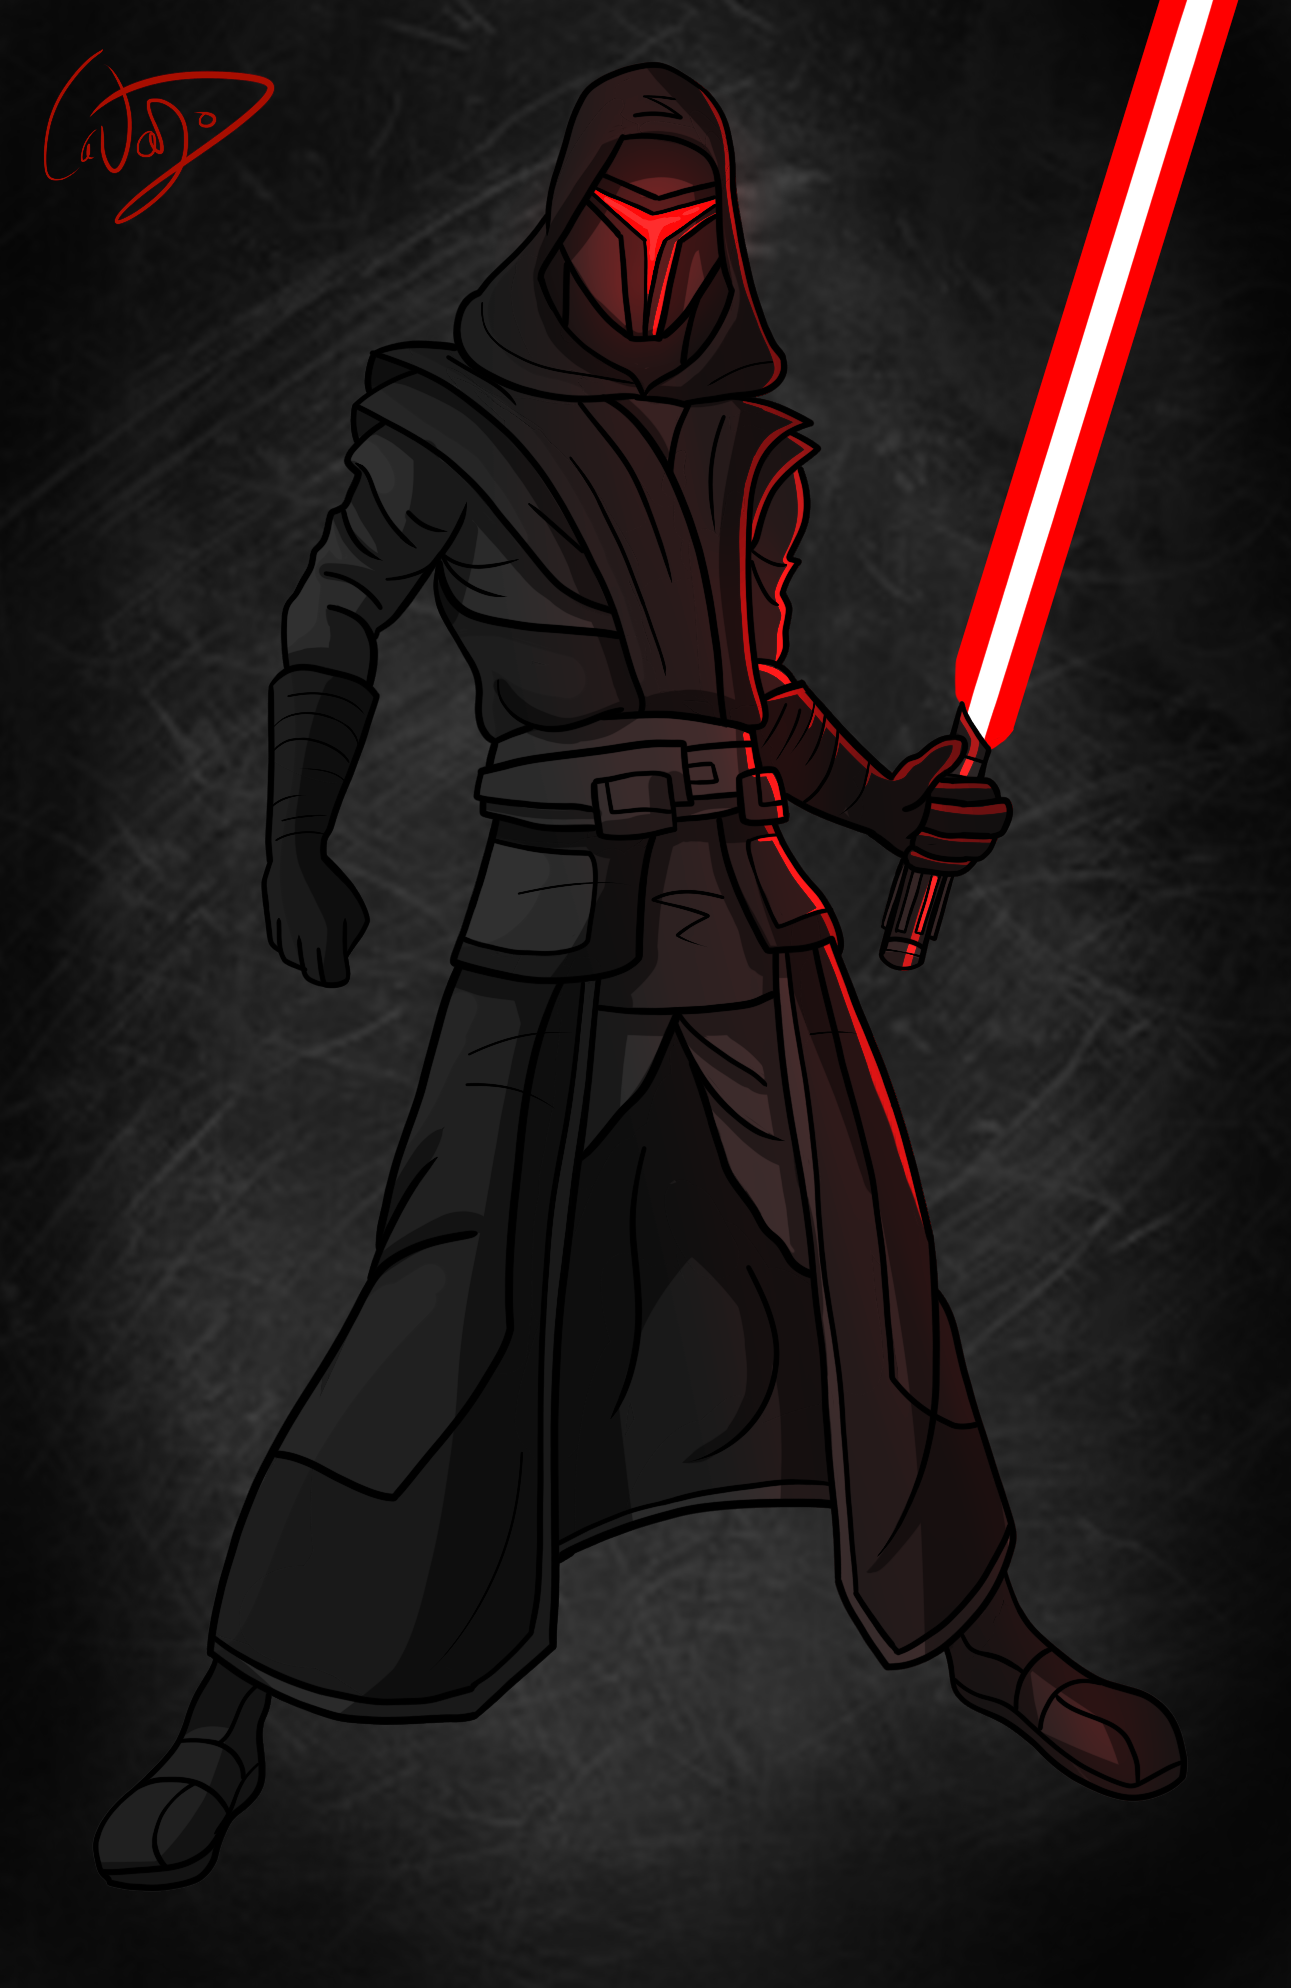 Pin By Annfwyn On Star Wars Star Wars Characters Pictures Star Wars Sith Lords Star Wars Images